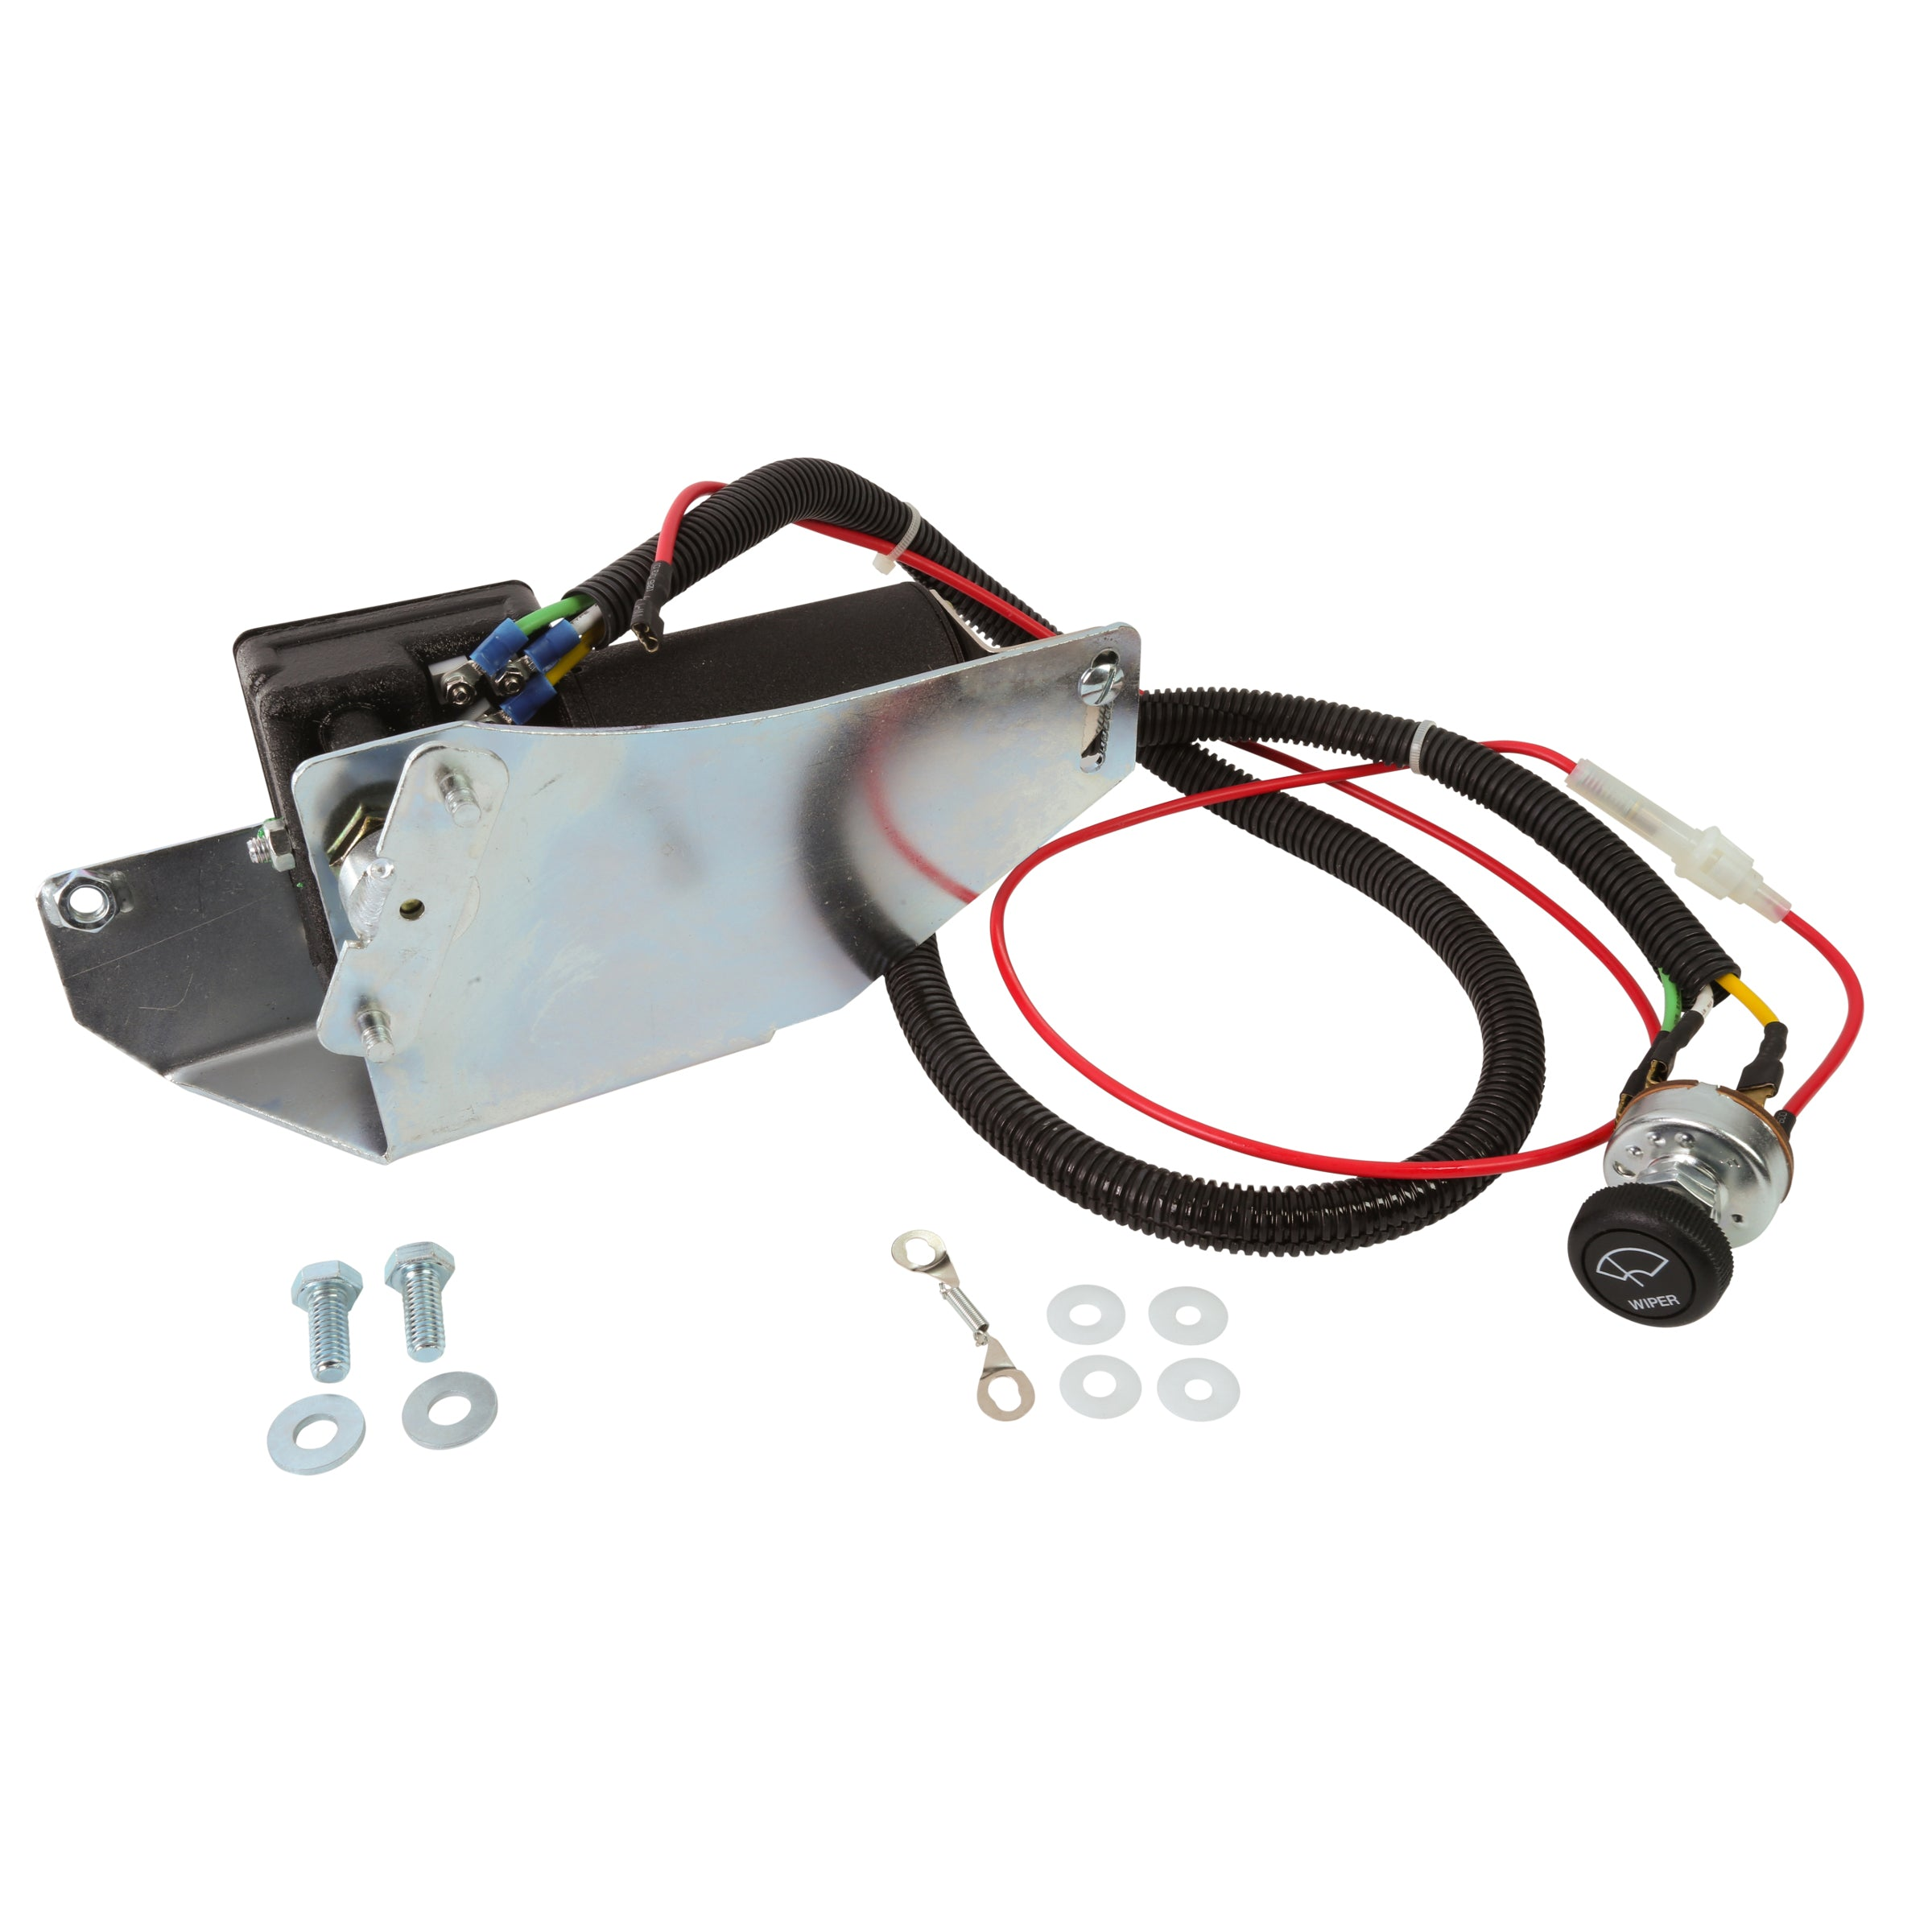 Electric Wiper Motor Conversion Kits • 1940 Passenger